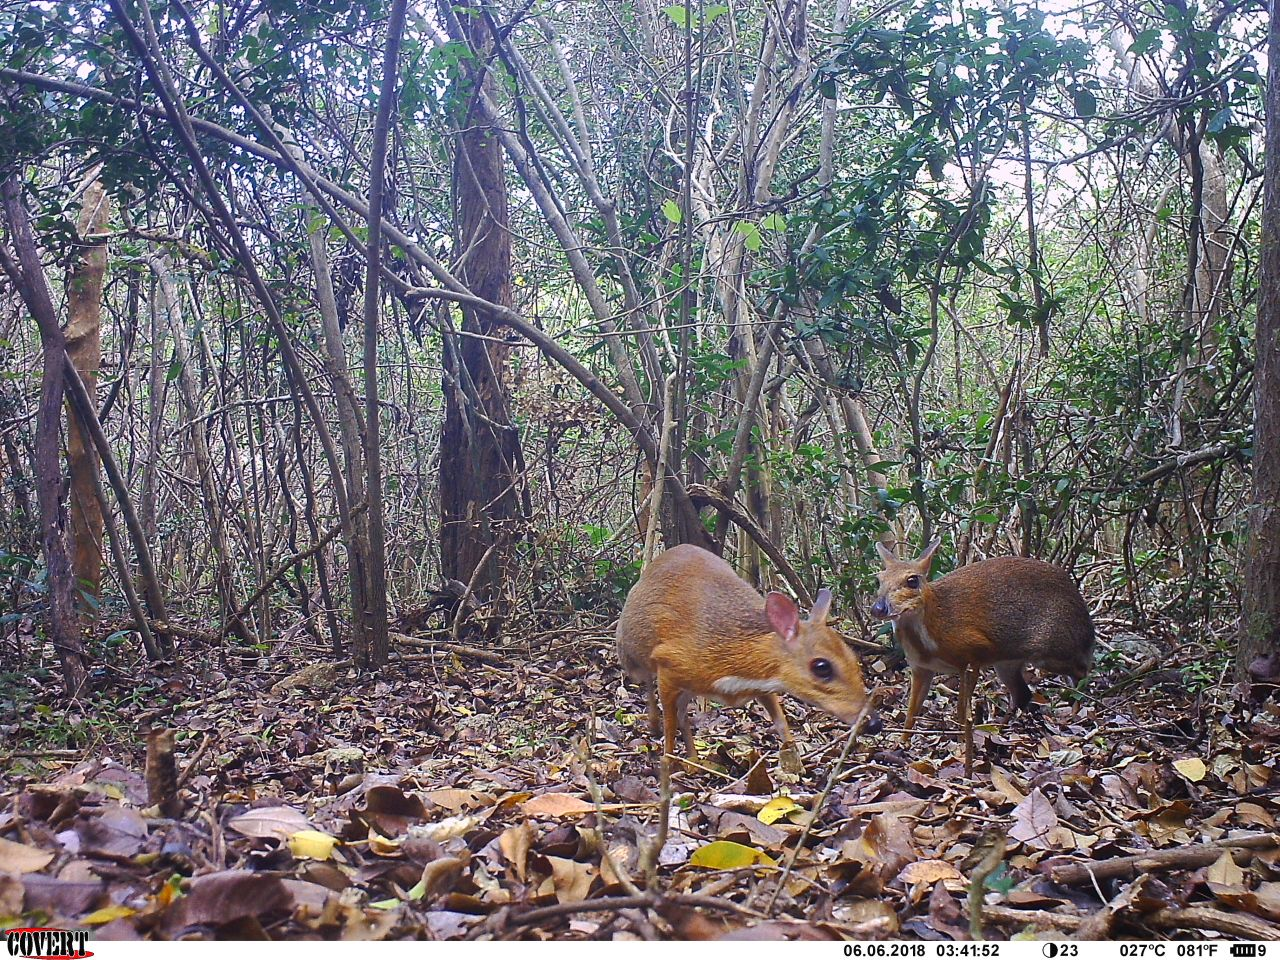 Adorable Vietnamese Mouse-Deer Rediscovered In The Wild After 30 Years!